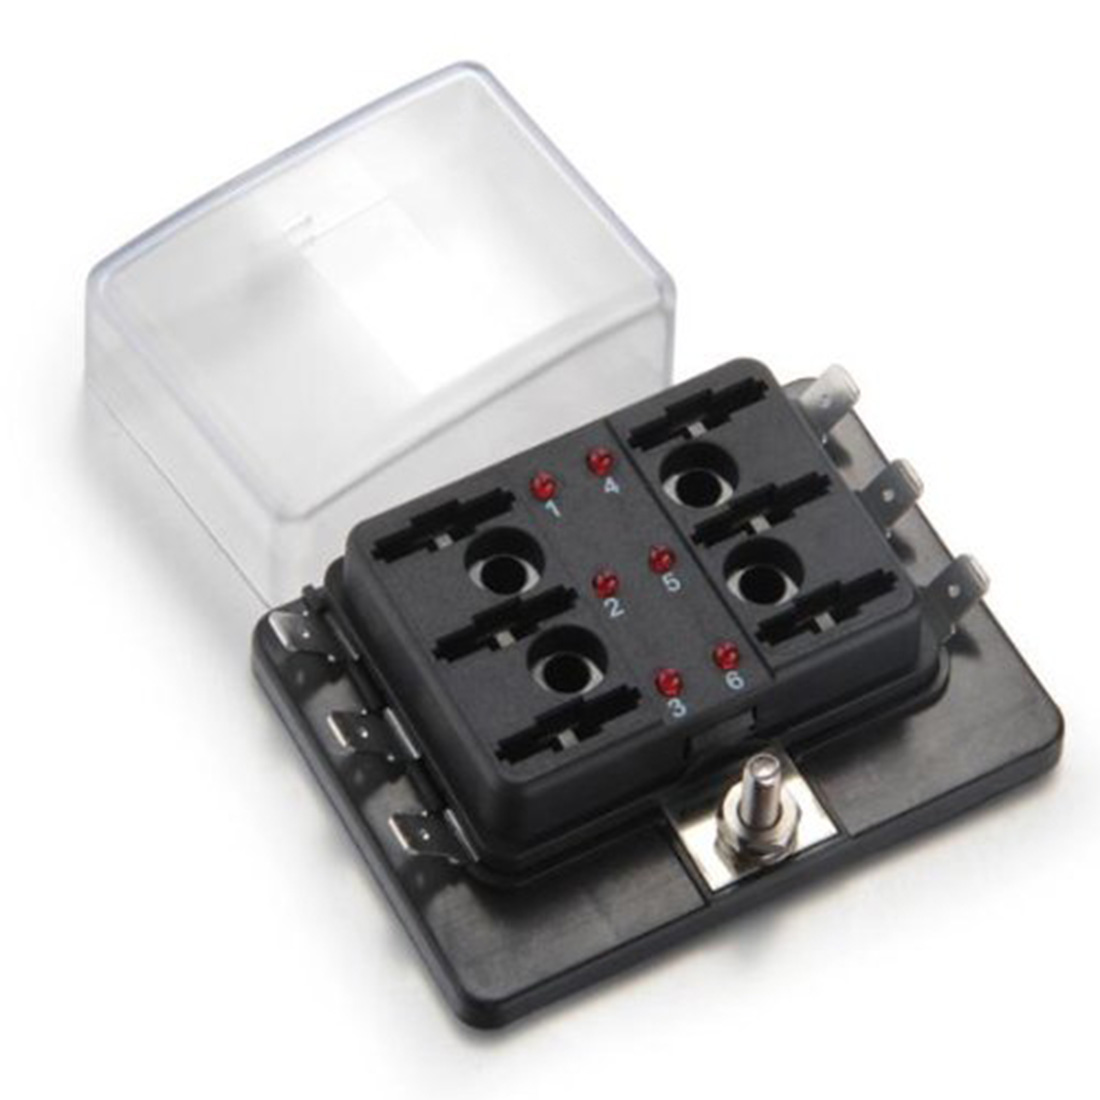 dewtreetali hotsale new top quality 6 way blade fuse box holder positive  bus in 12v led warning kit for car boat marine